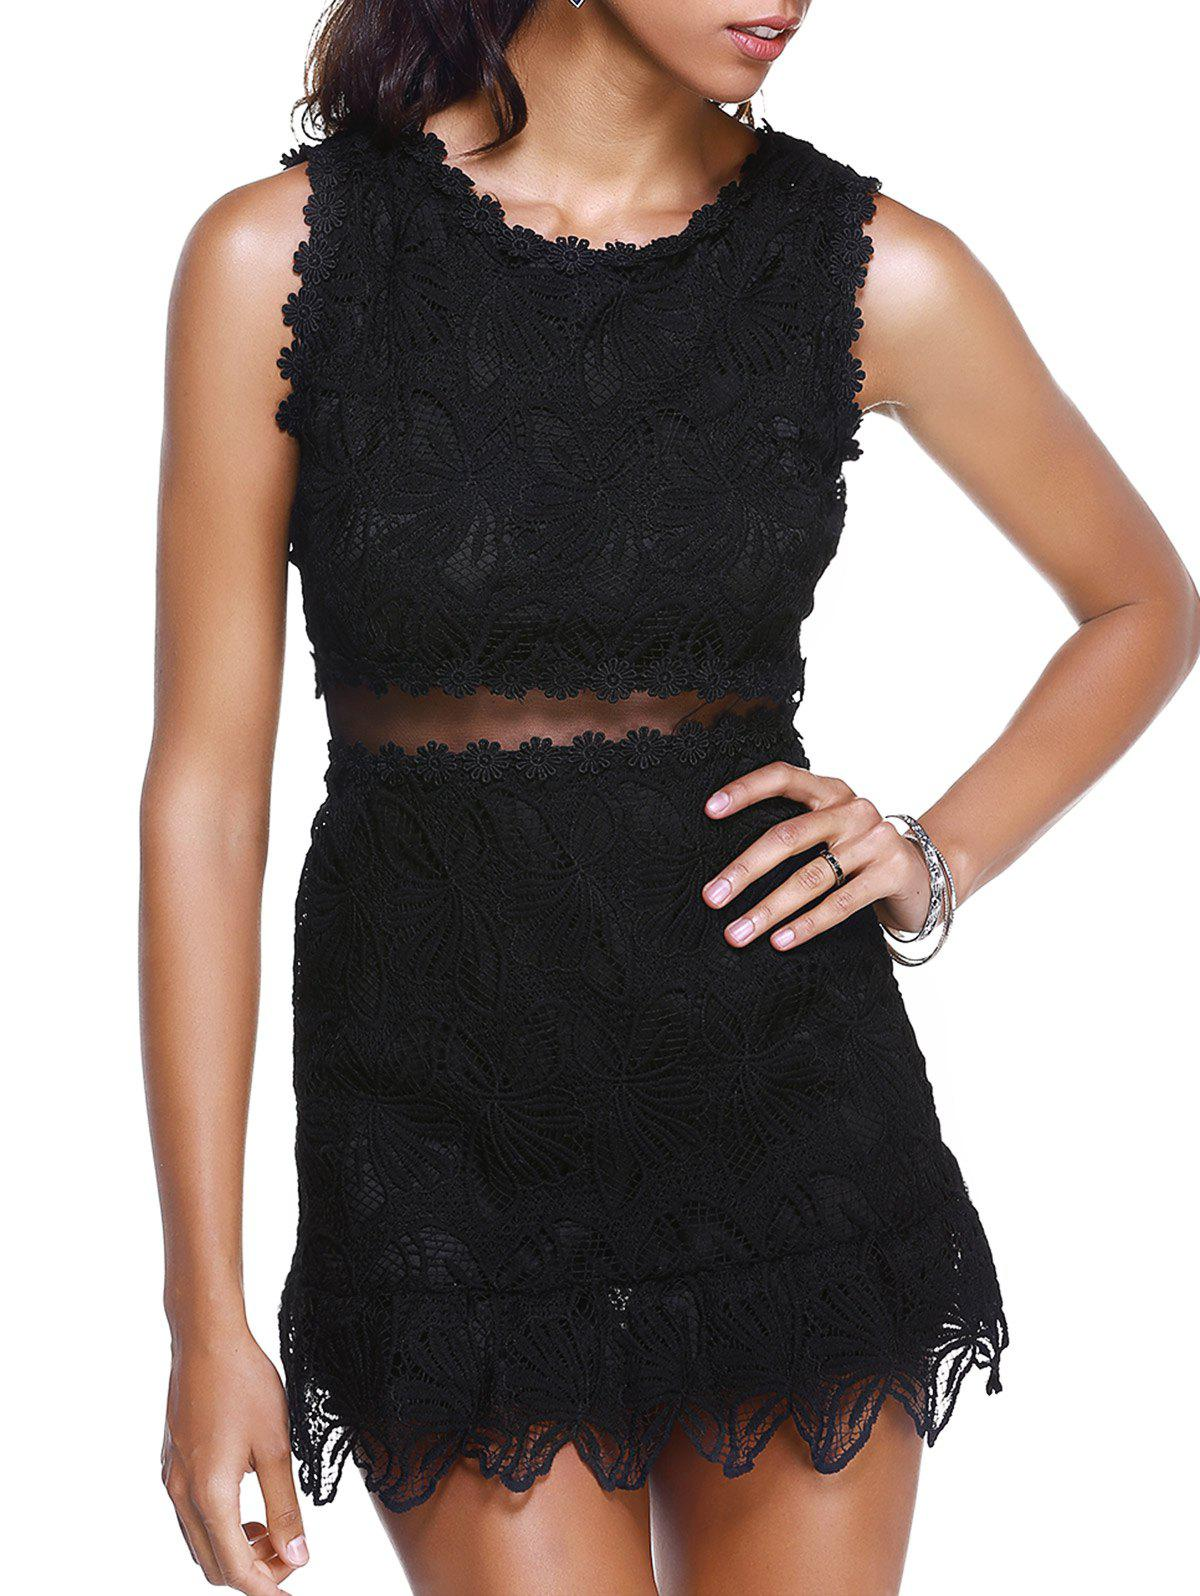 Women's Graceful See-Through High Waist Laced Dress - BLACK ONE SIZE(FIT SIZE XS TO M)